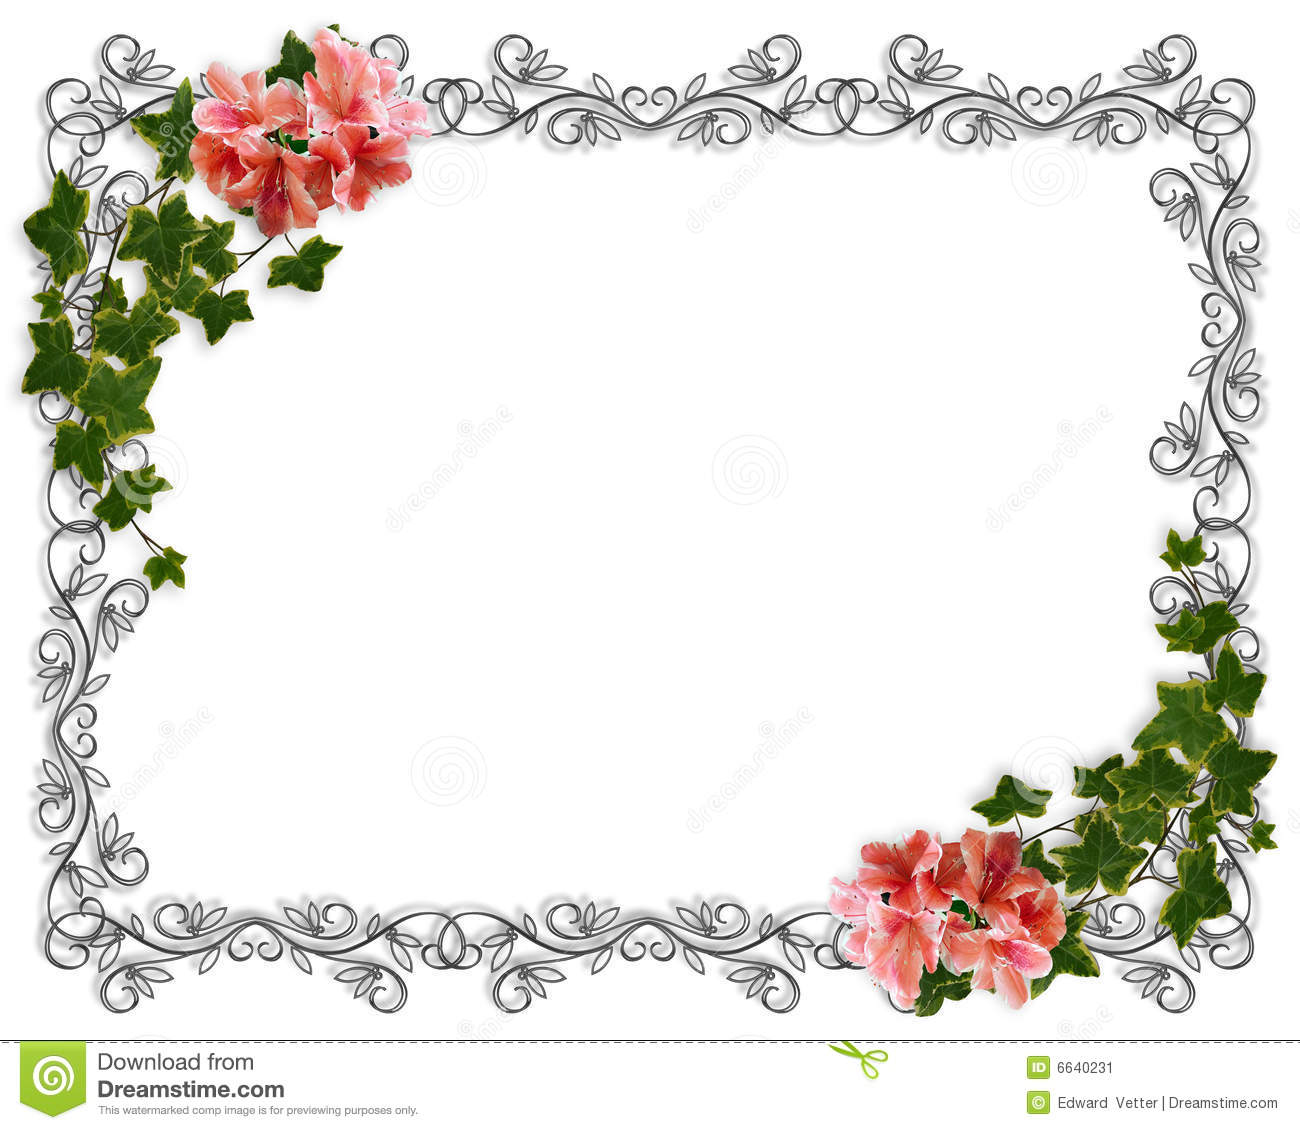 wedding invitation ivy floral border stock illustration